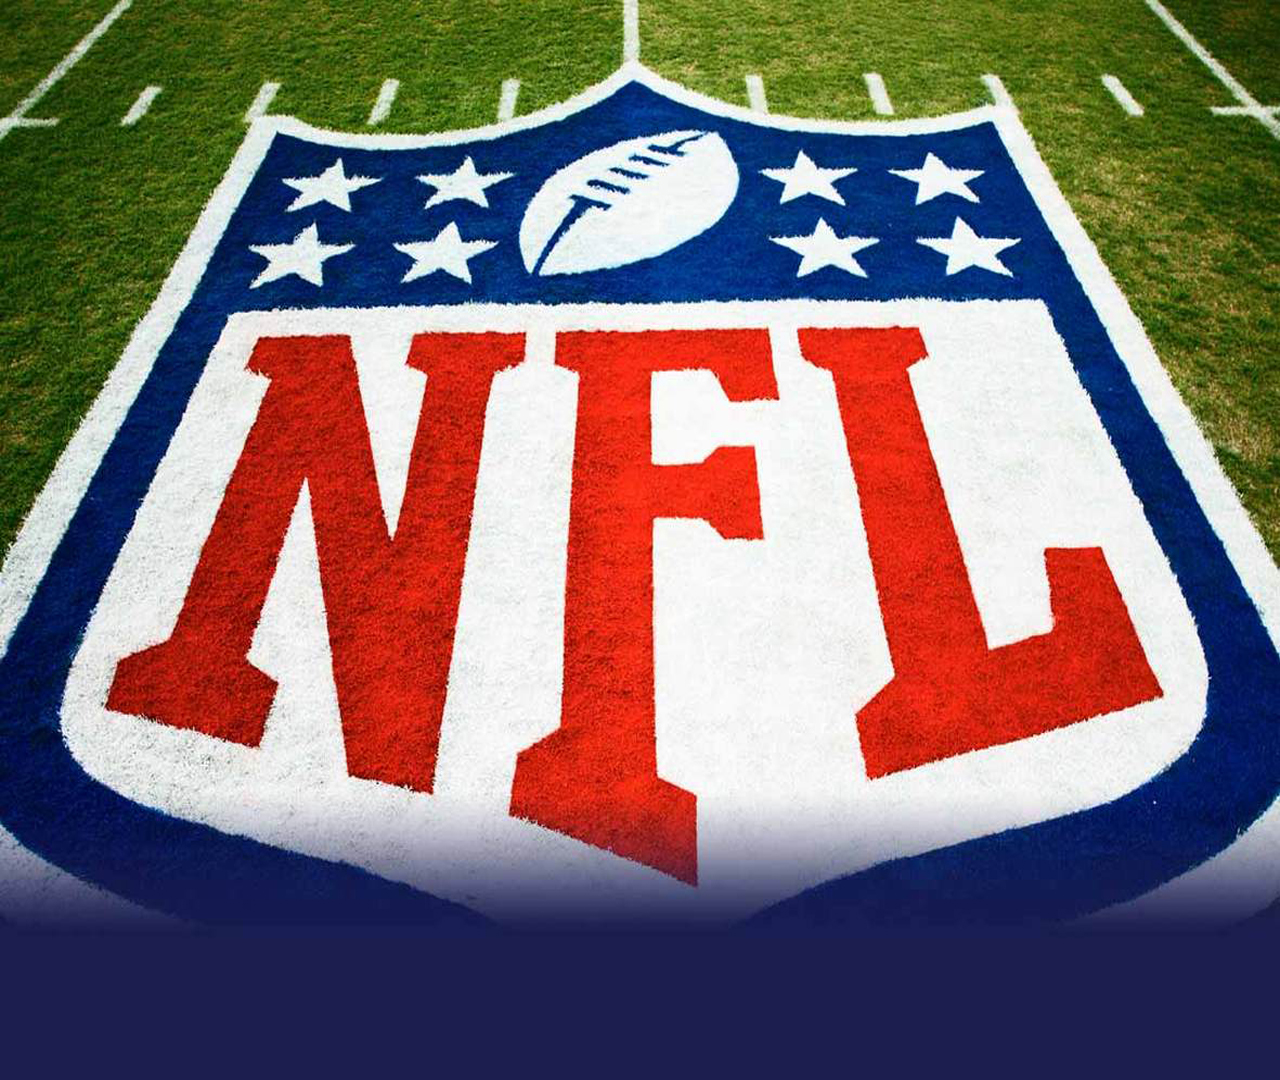 NFL 2012   Download NFL Football HD Wallpapers for 1280x1080